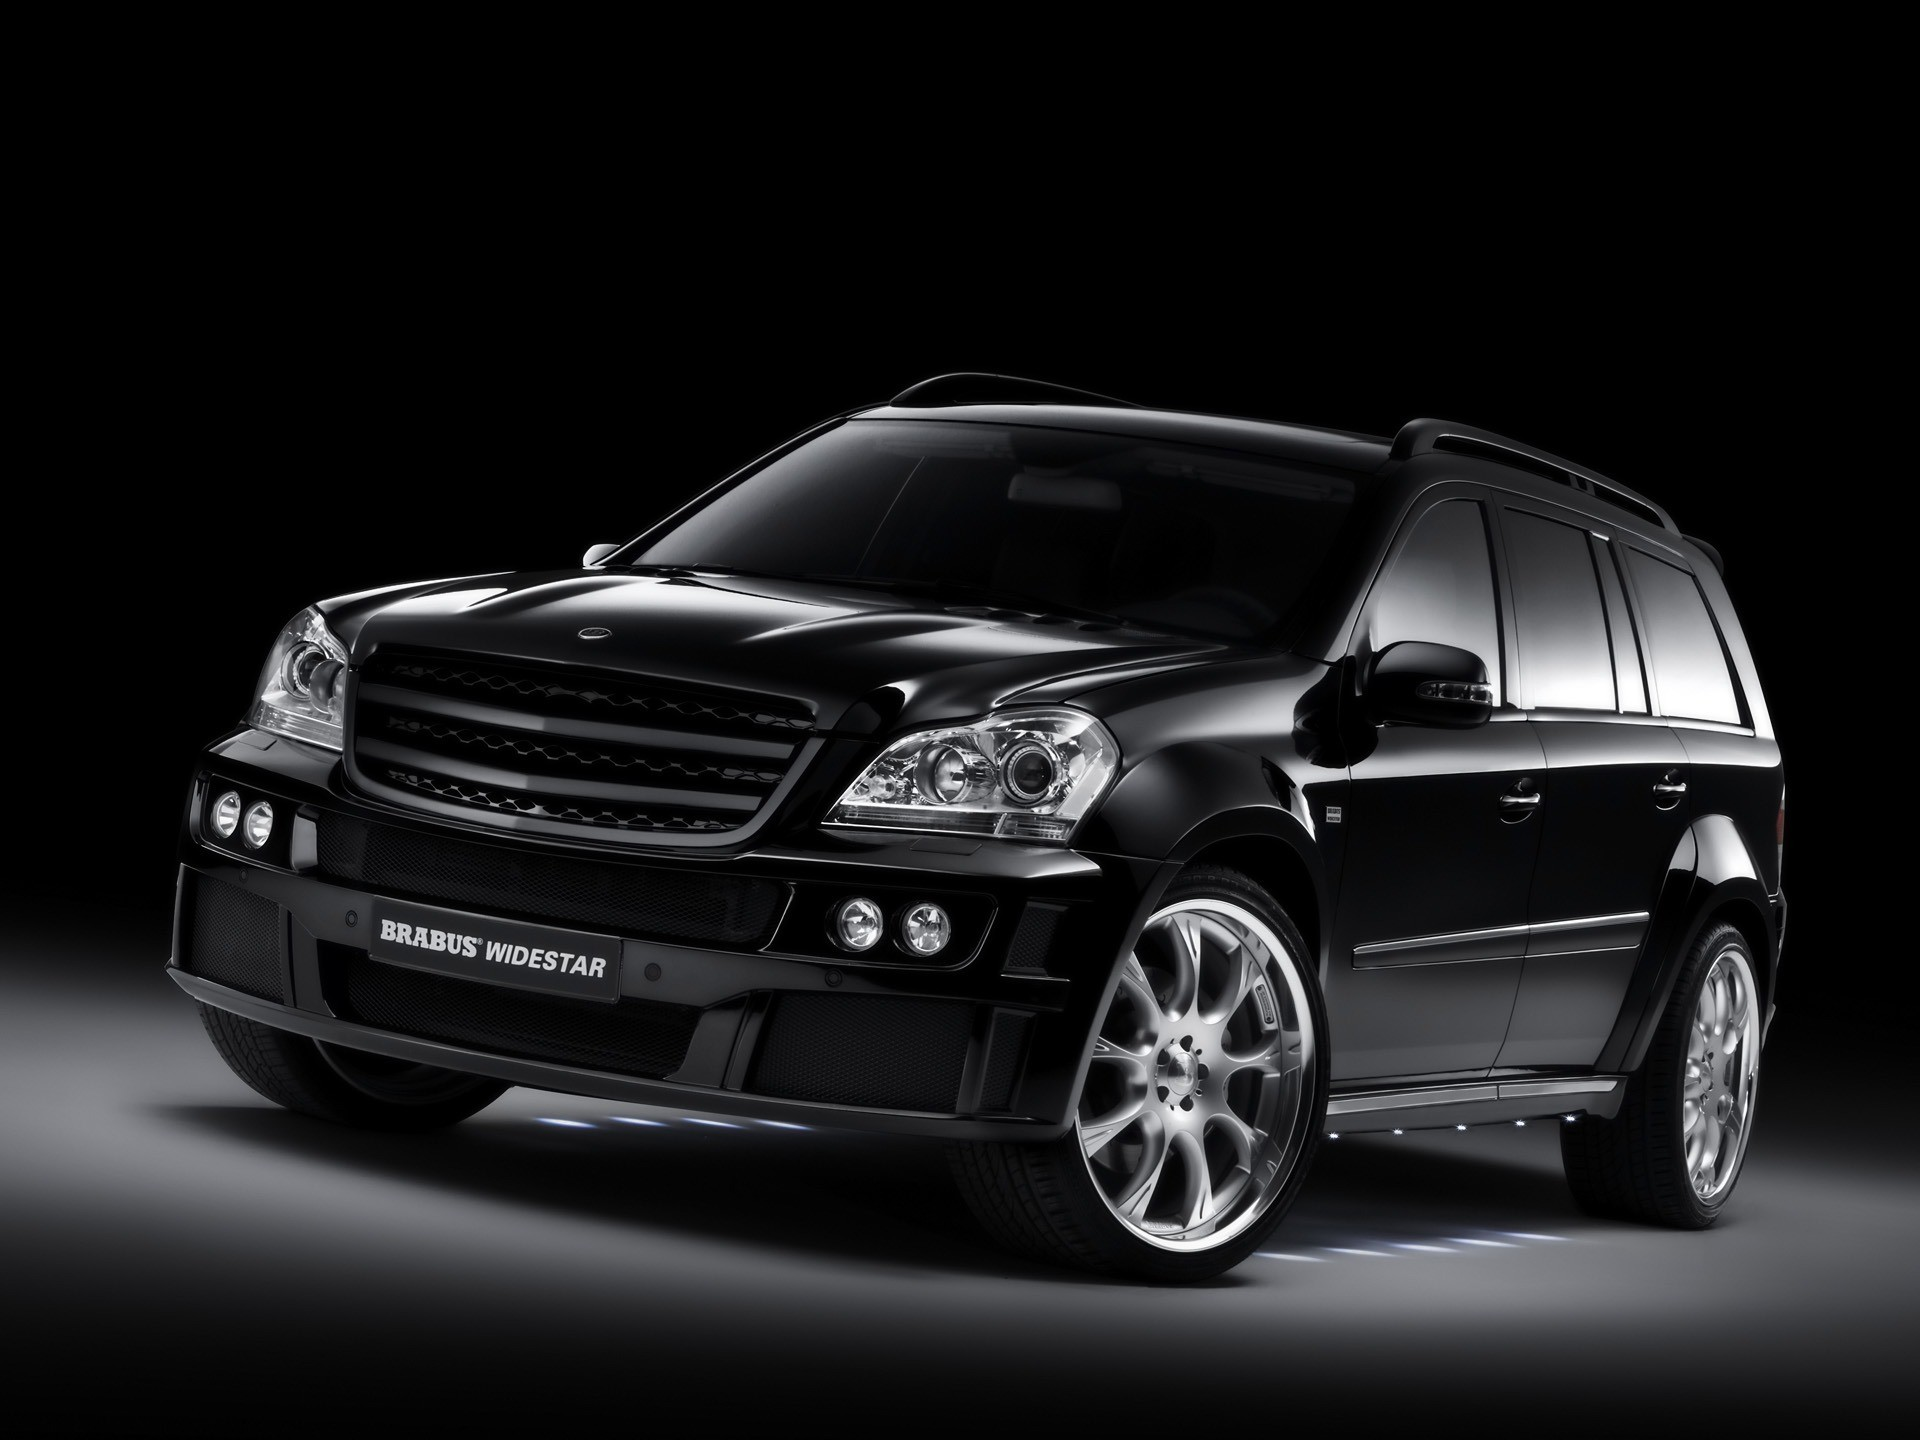 mercedes brabus wallpaper (65 images)1920x1440 brabus t65 rs back wallpapers and stock photos download